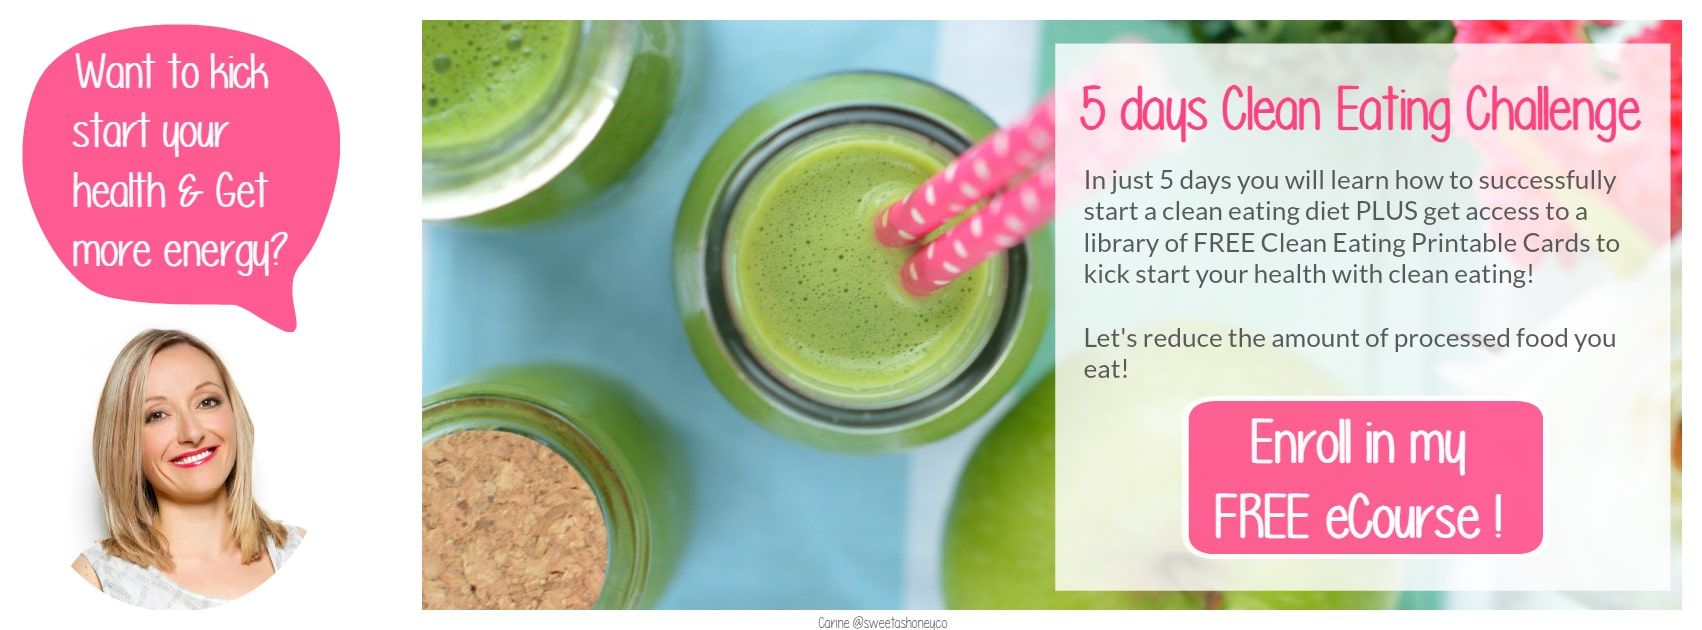 Join 5 days clean eating challenge